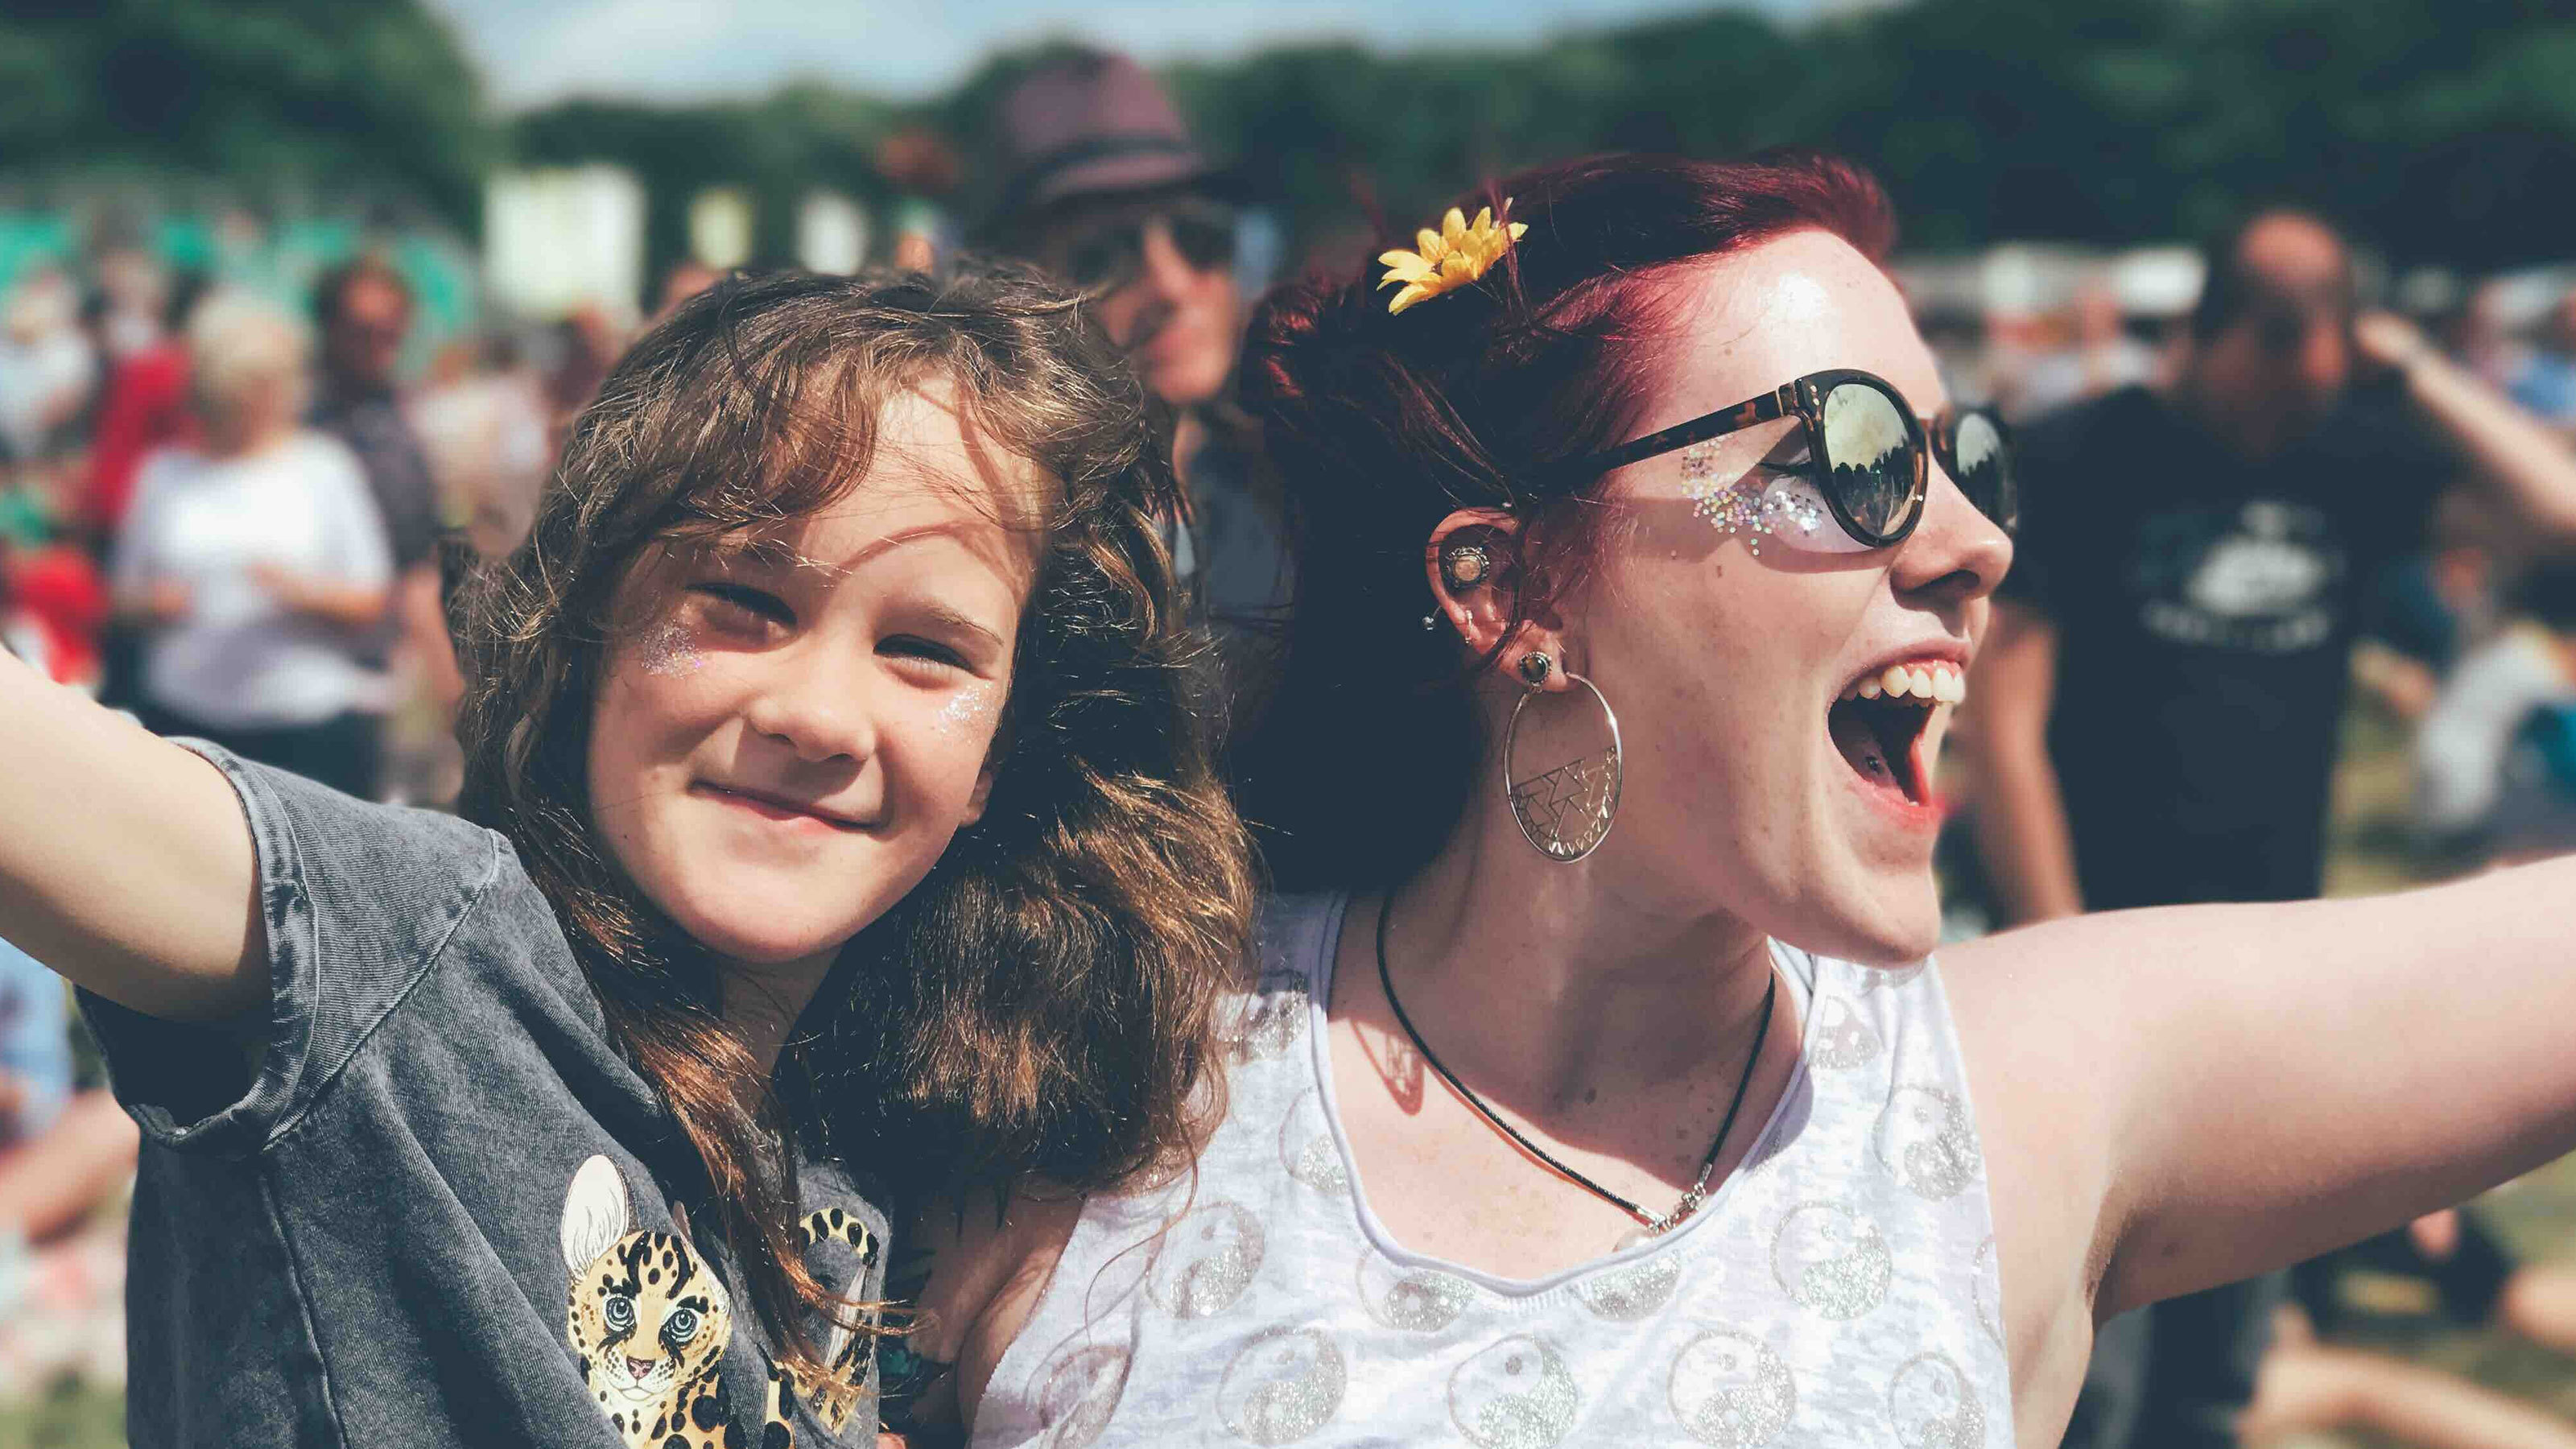 Young-girl-and-a-woman-cheering-at-a-festival